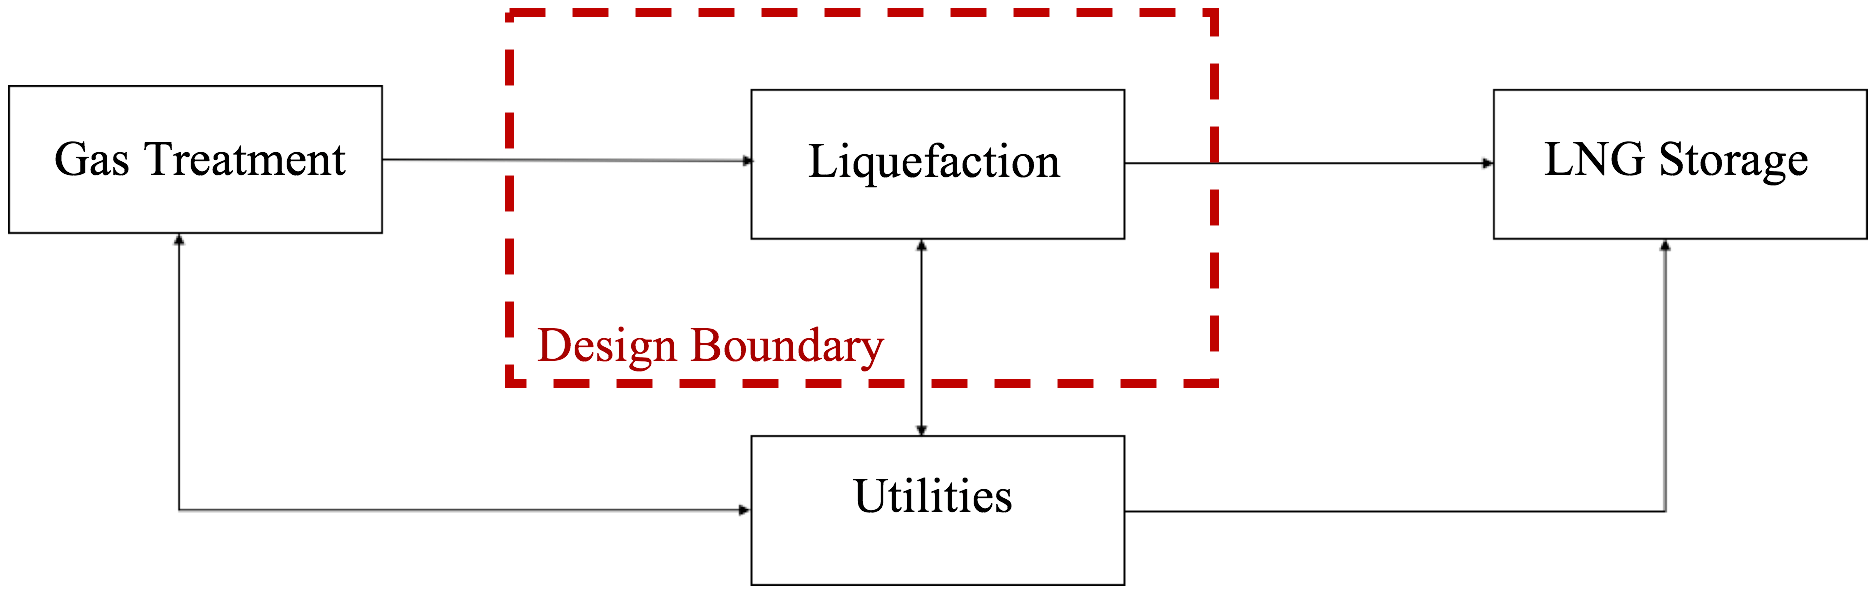 hight resolution of only when heavier hydrocarbons are becoming significant in the feed gas must cryogenic distillation be designed for the liquefaction processes